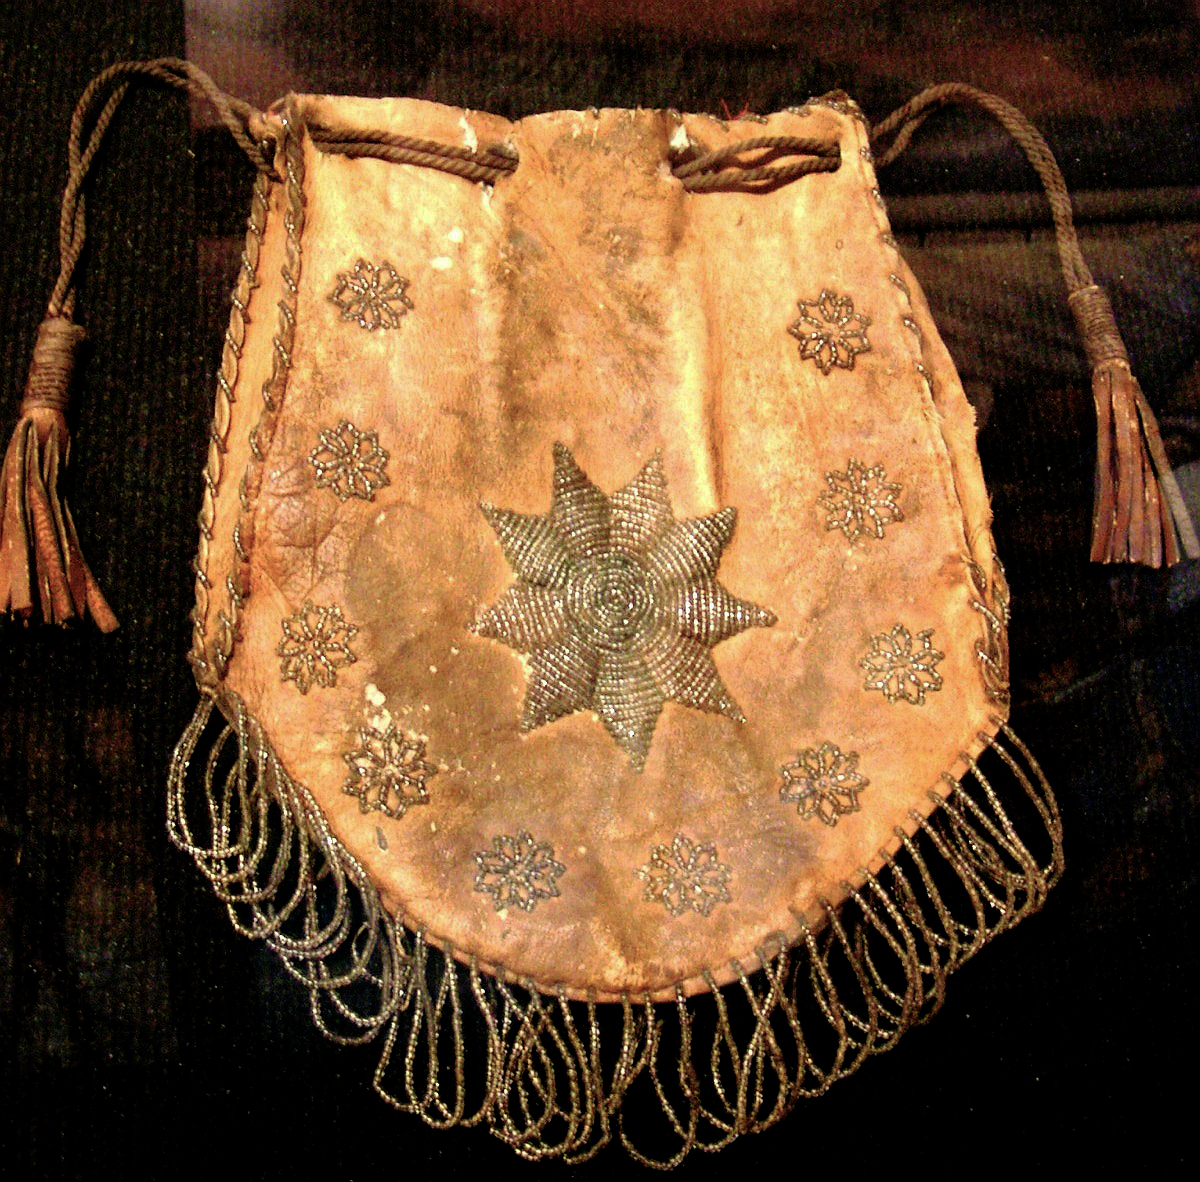 Cherokee purse, pre-1840, made by a student at the Moravian Mission School, James Vann plantation, Georgia. CourtesyoftheGeorgia Department of Natural Resources, ChiefVannHouseHistoricSite.